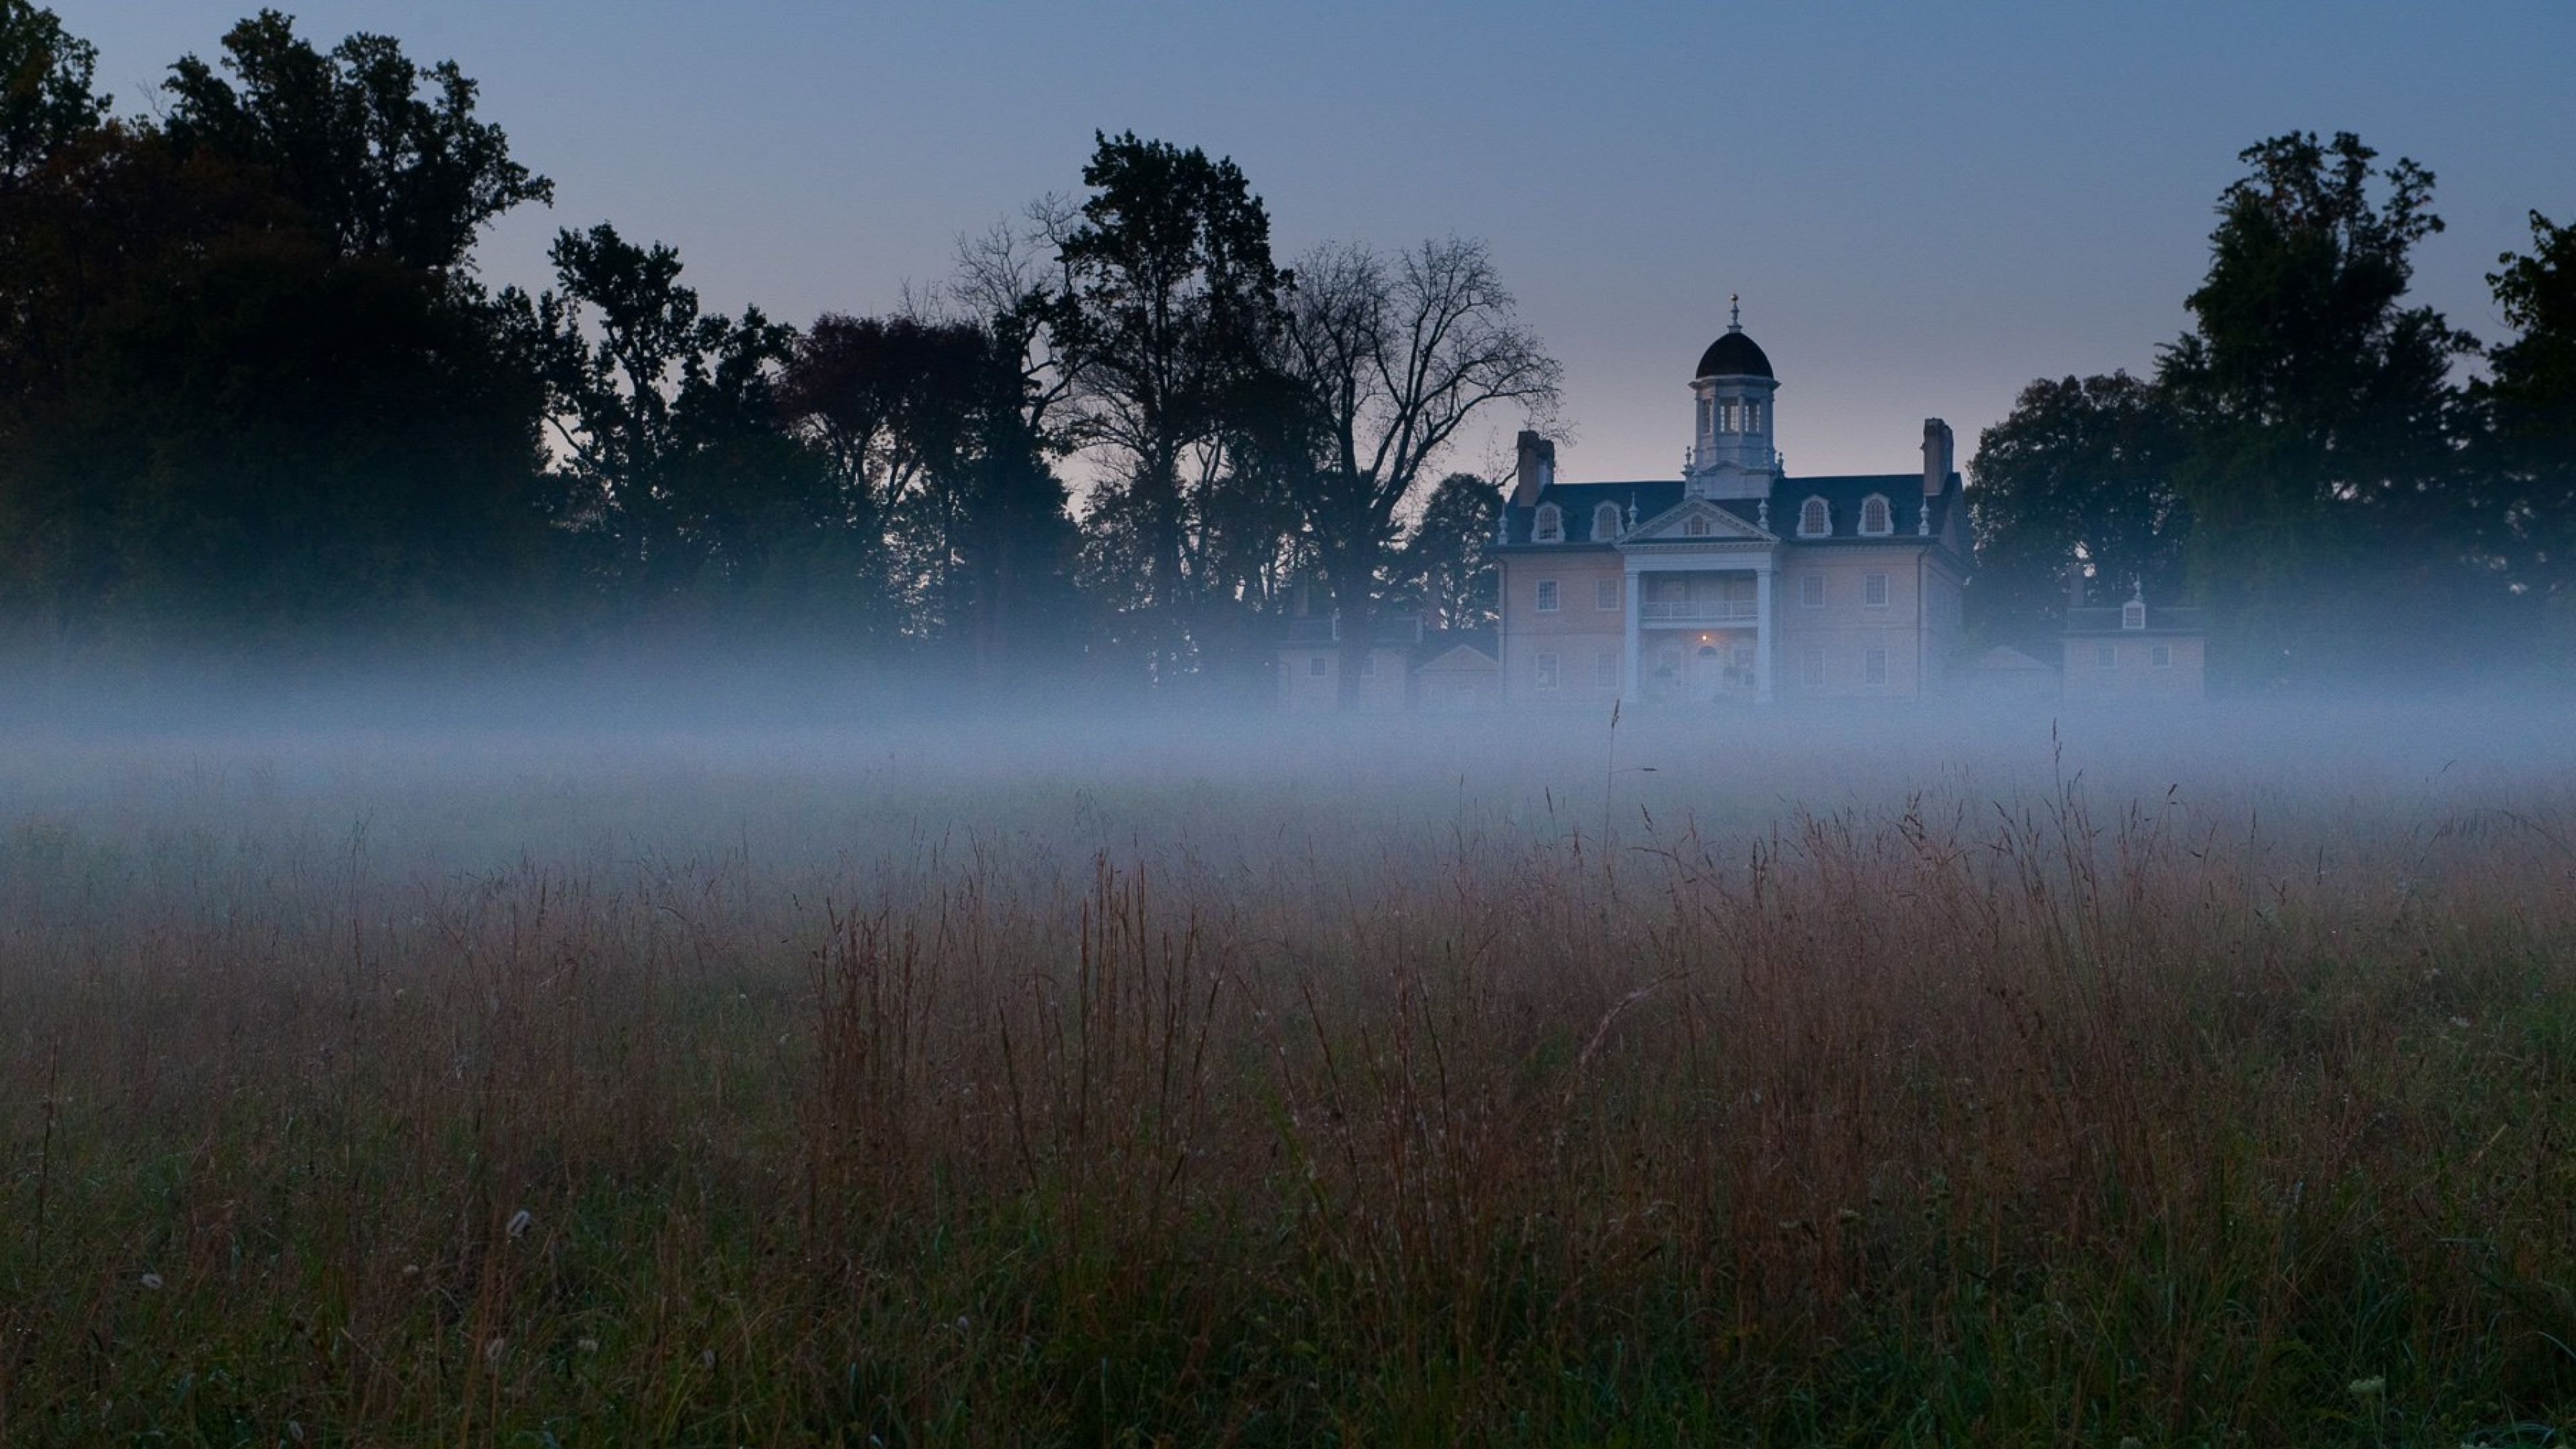 An eerie photo of the Hampton National Historic Site in the distance behind a foggy field at dusk